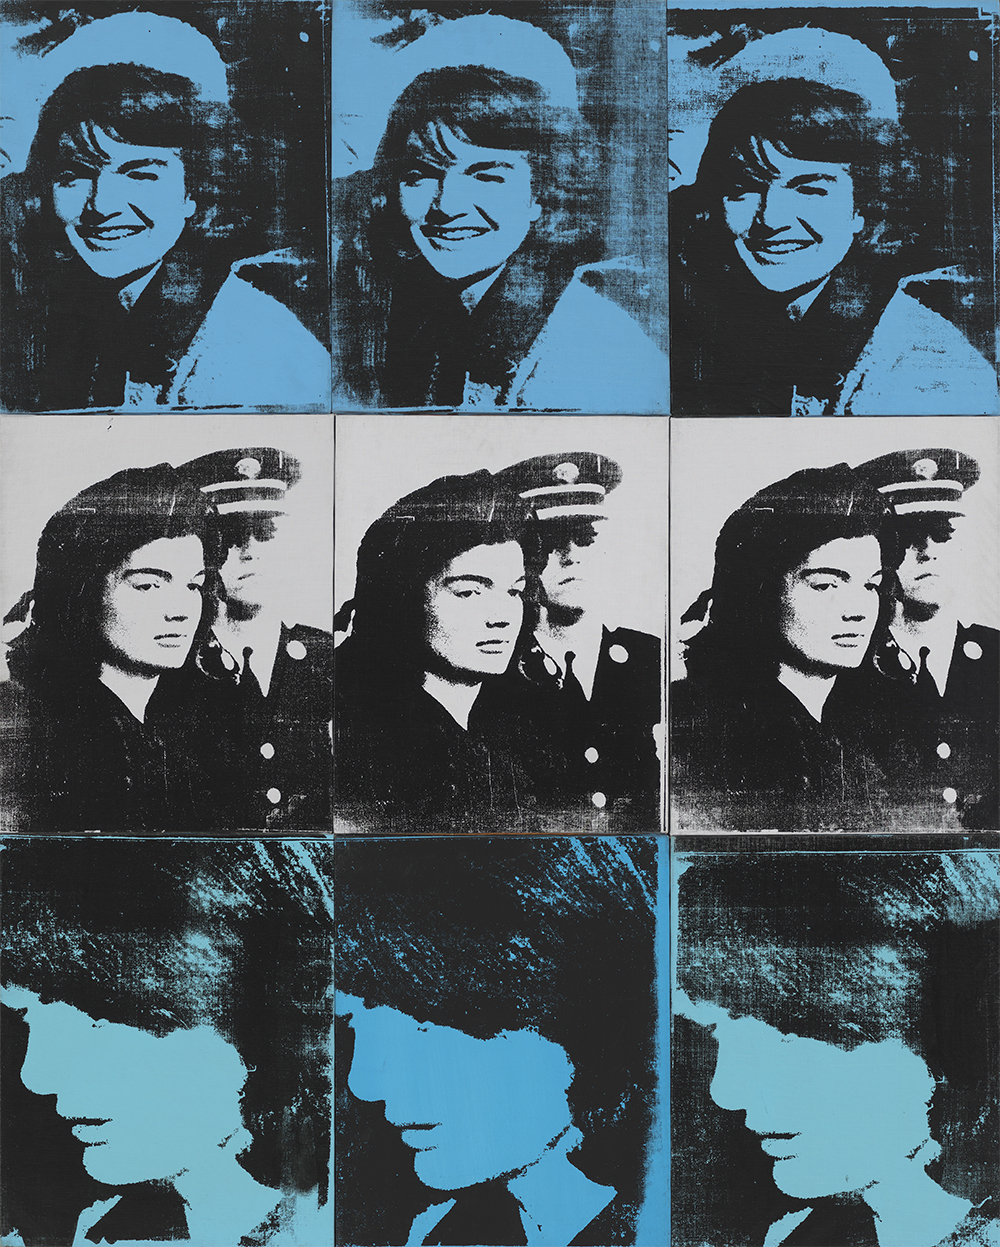 Andy Warhol (1928–1987), Nine Jackies, 1964. Acrylic and silkscreen ink on linen, nine panels: 60 3⁄8 × 48 1⁄4 in. (153.4 × 122.6 cm) overall. Whitney Museum of American Art, New York; gift of The American Contemporary Art Foundation, Inc. Leonard A. Lauder, President 2002.273 © The Andy Warhol Foundation for the Visual Arts, Inc. / Artists Rights Society (ARS) New York